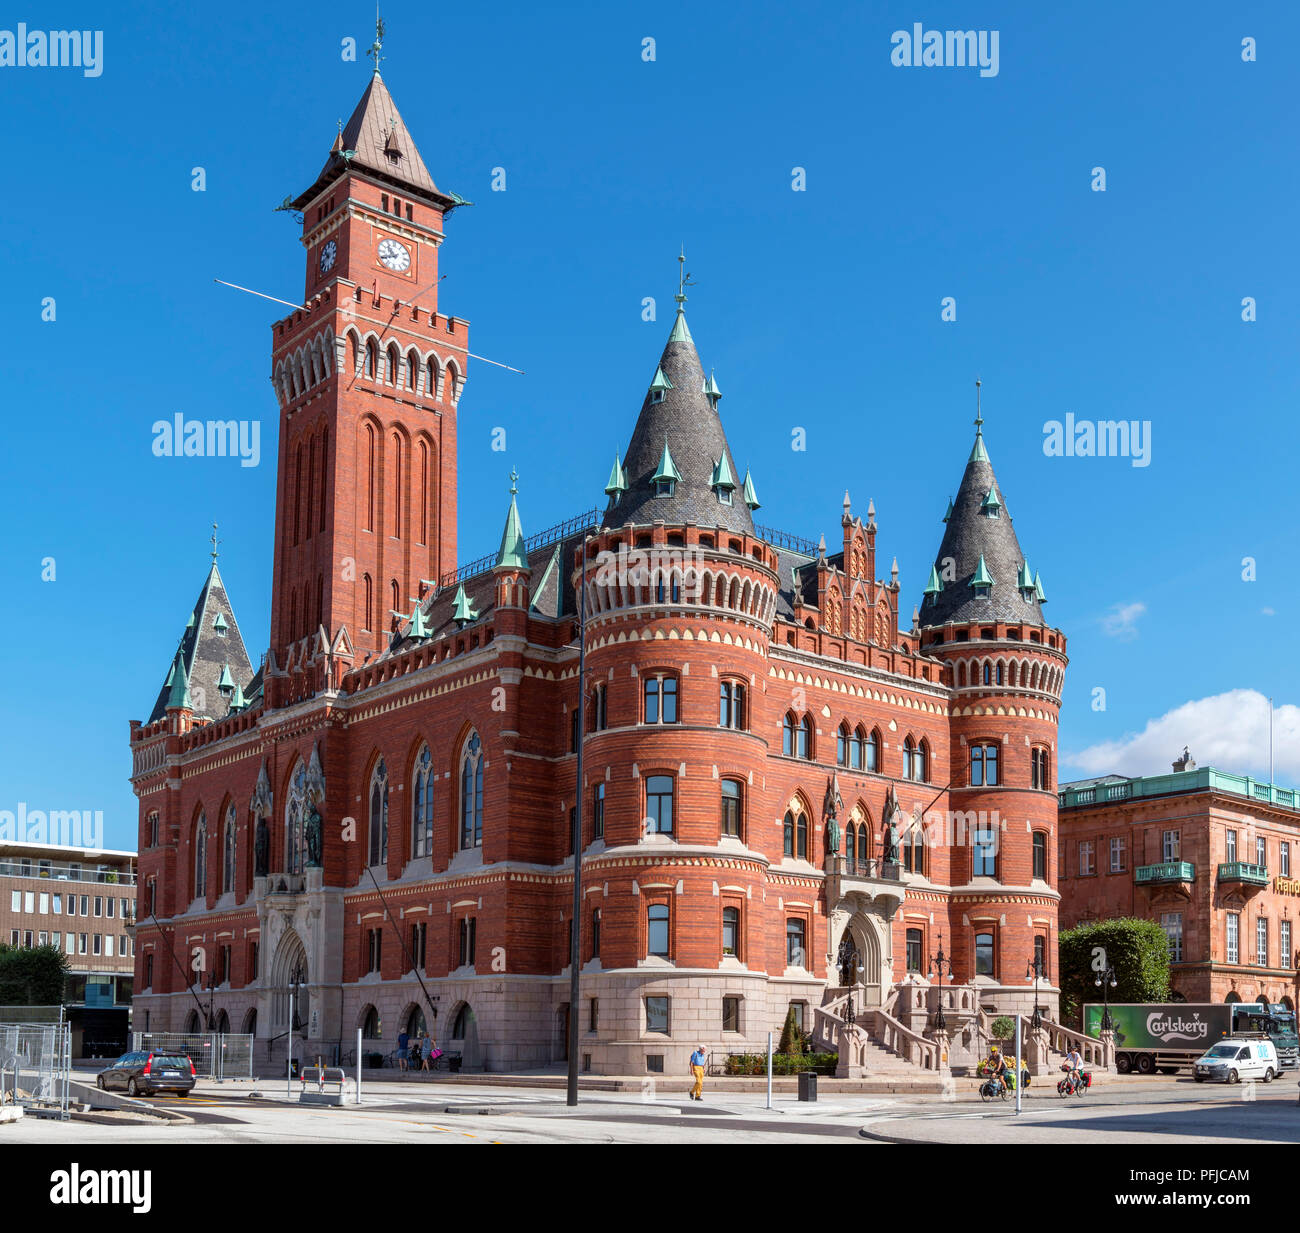 Helsingborg, Sweden. City Hall (Radhuset) in the city centre, Helsingborg, Scania, Sweden - Stock Image